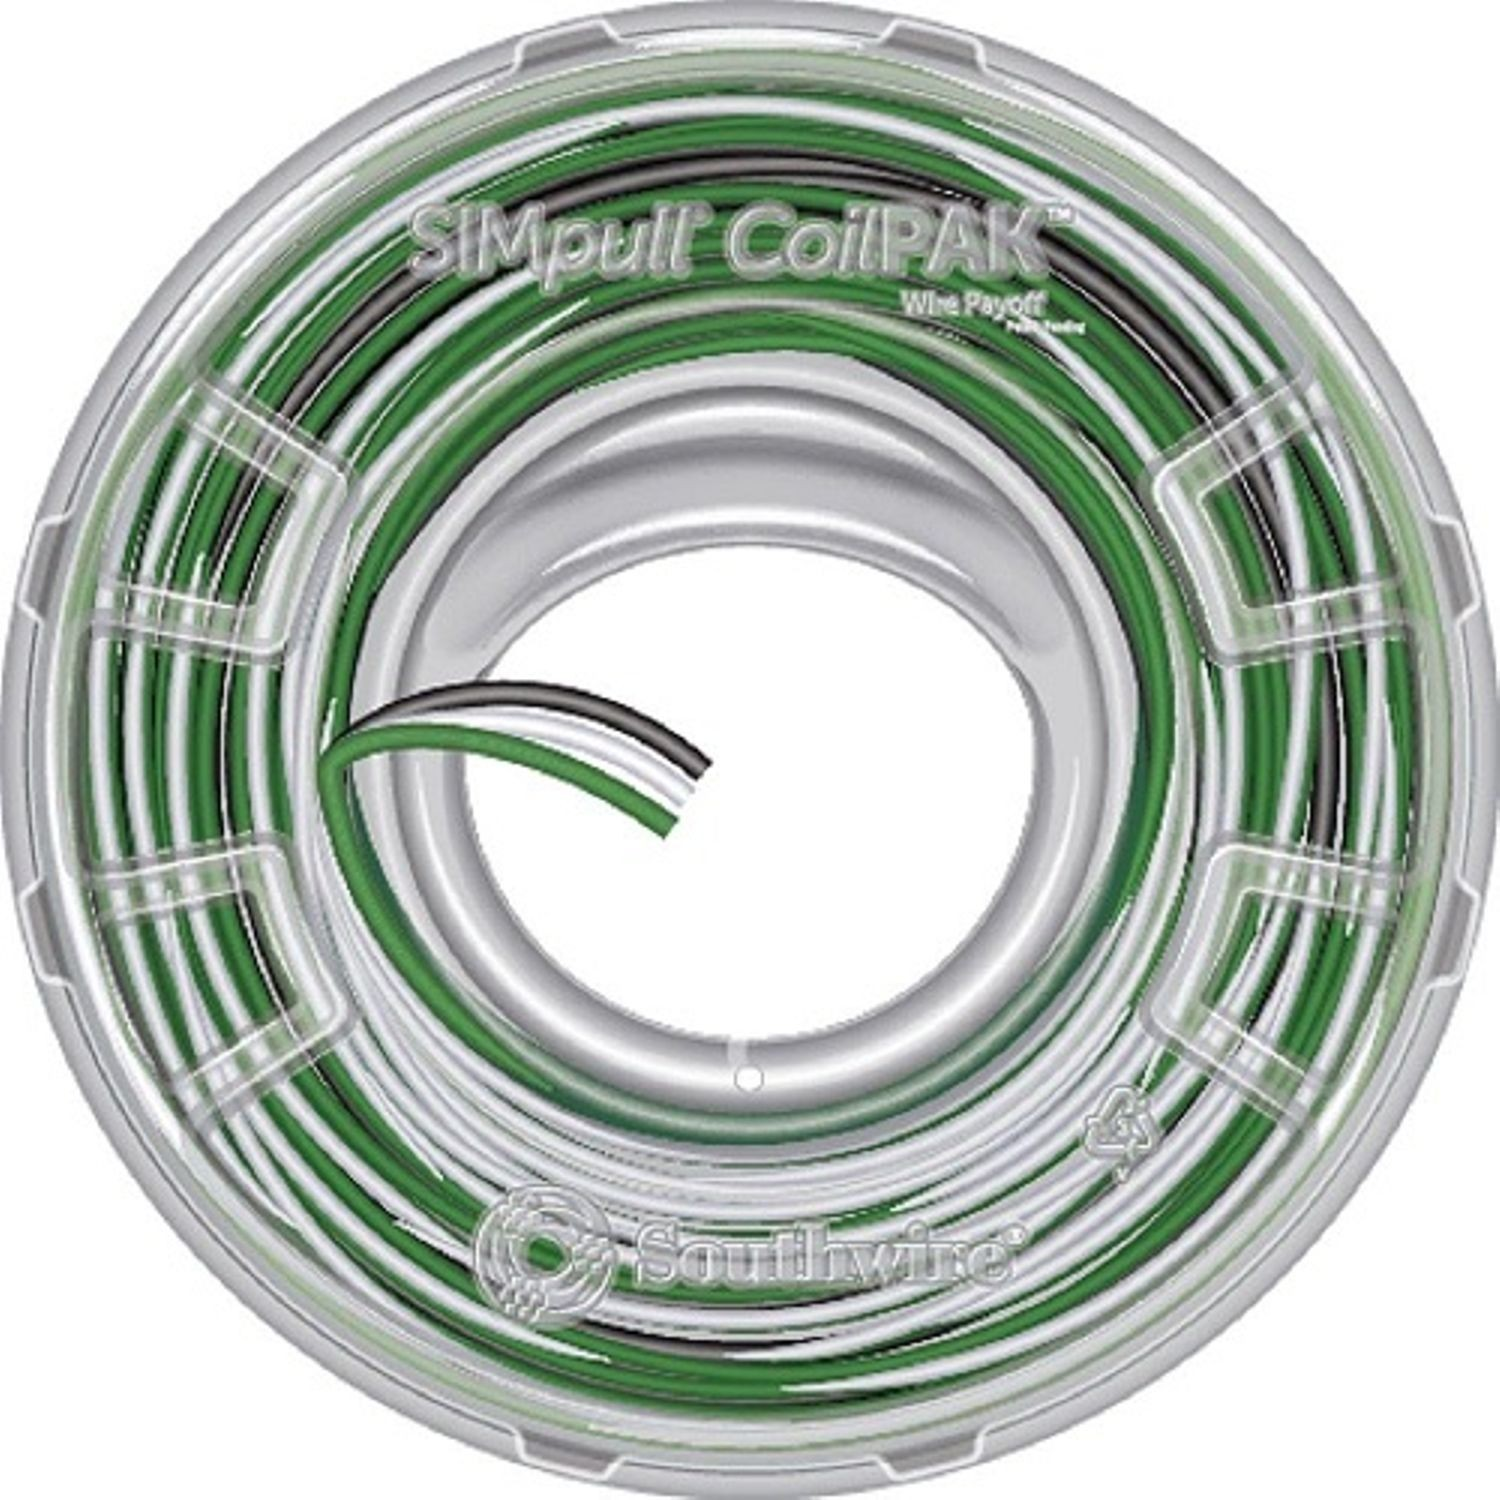 Southwire® SIMpull THHN® THHN Building Wire, 600 VAC, (3) 12 AWG ...